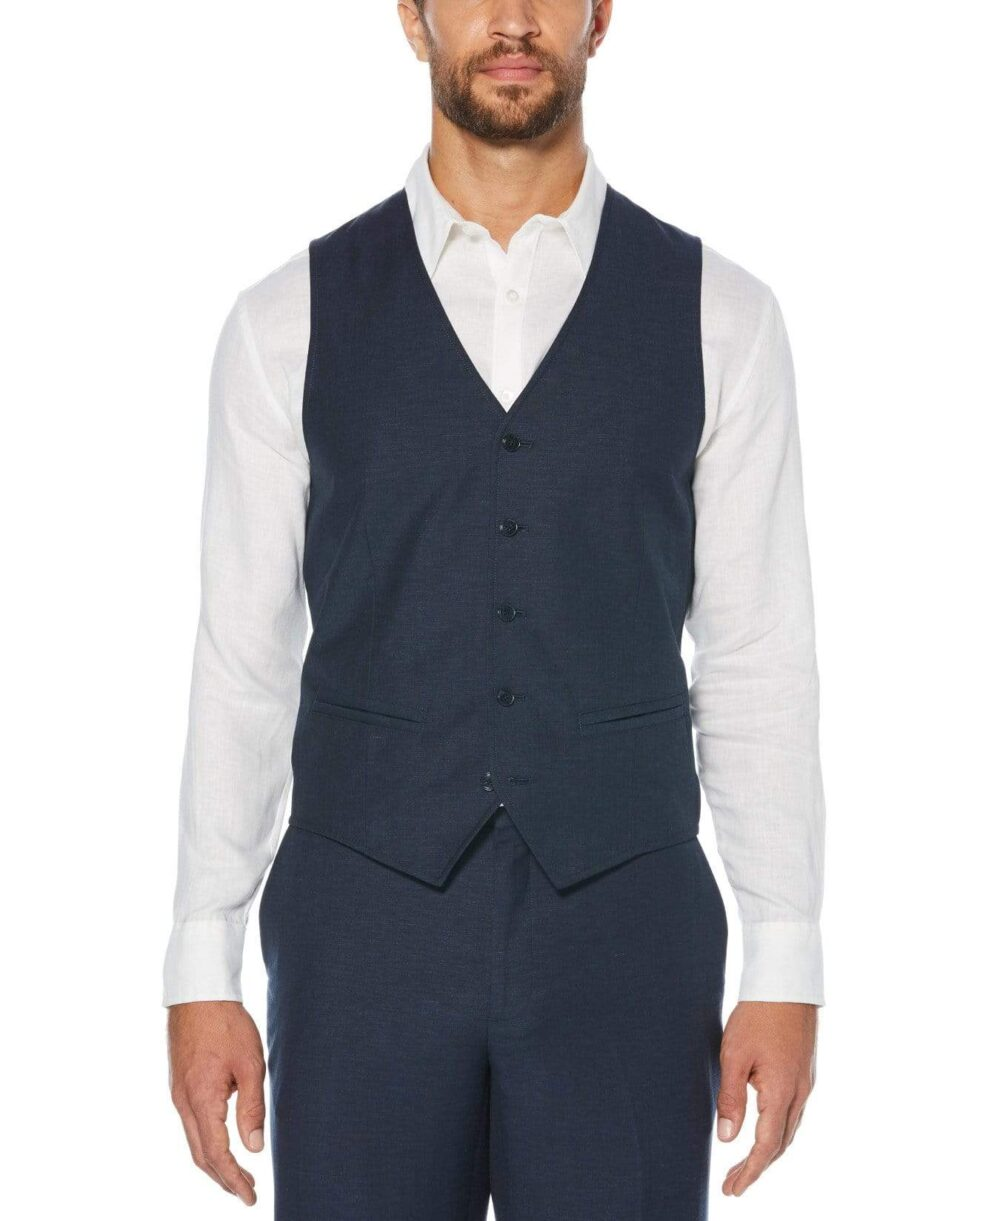 Cubavera Men's Vest in Dress Blues, Size Medium, Linen Blend